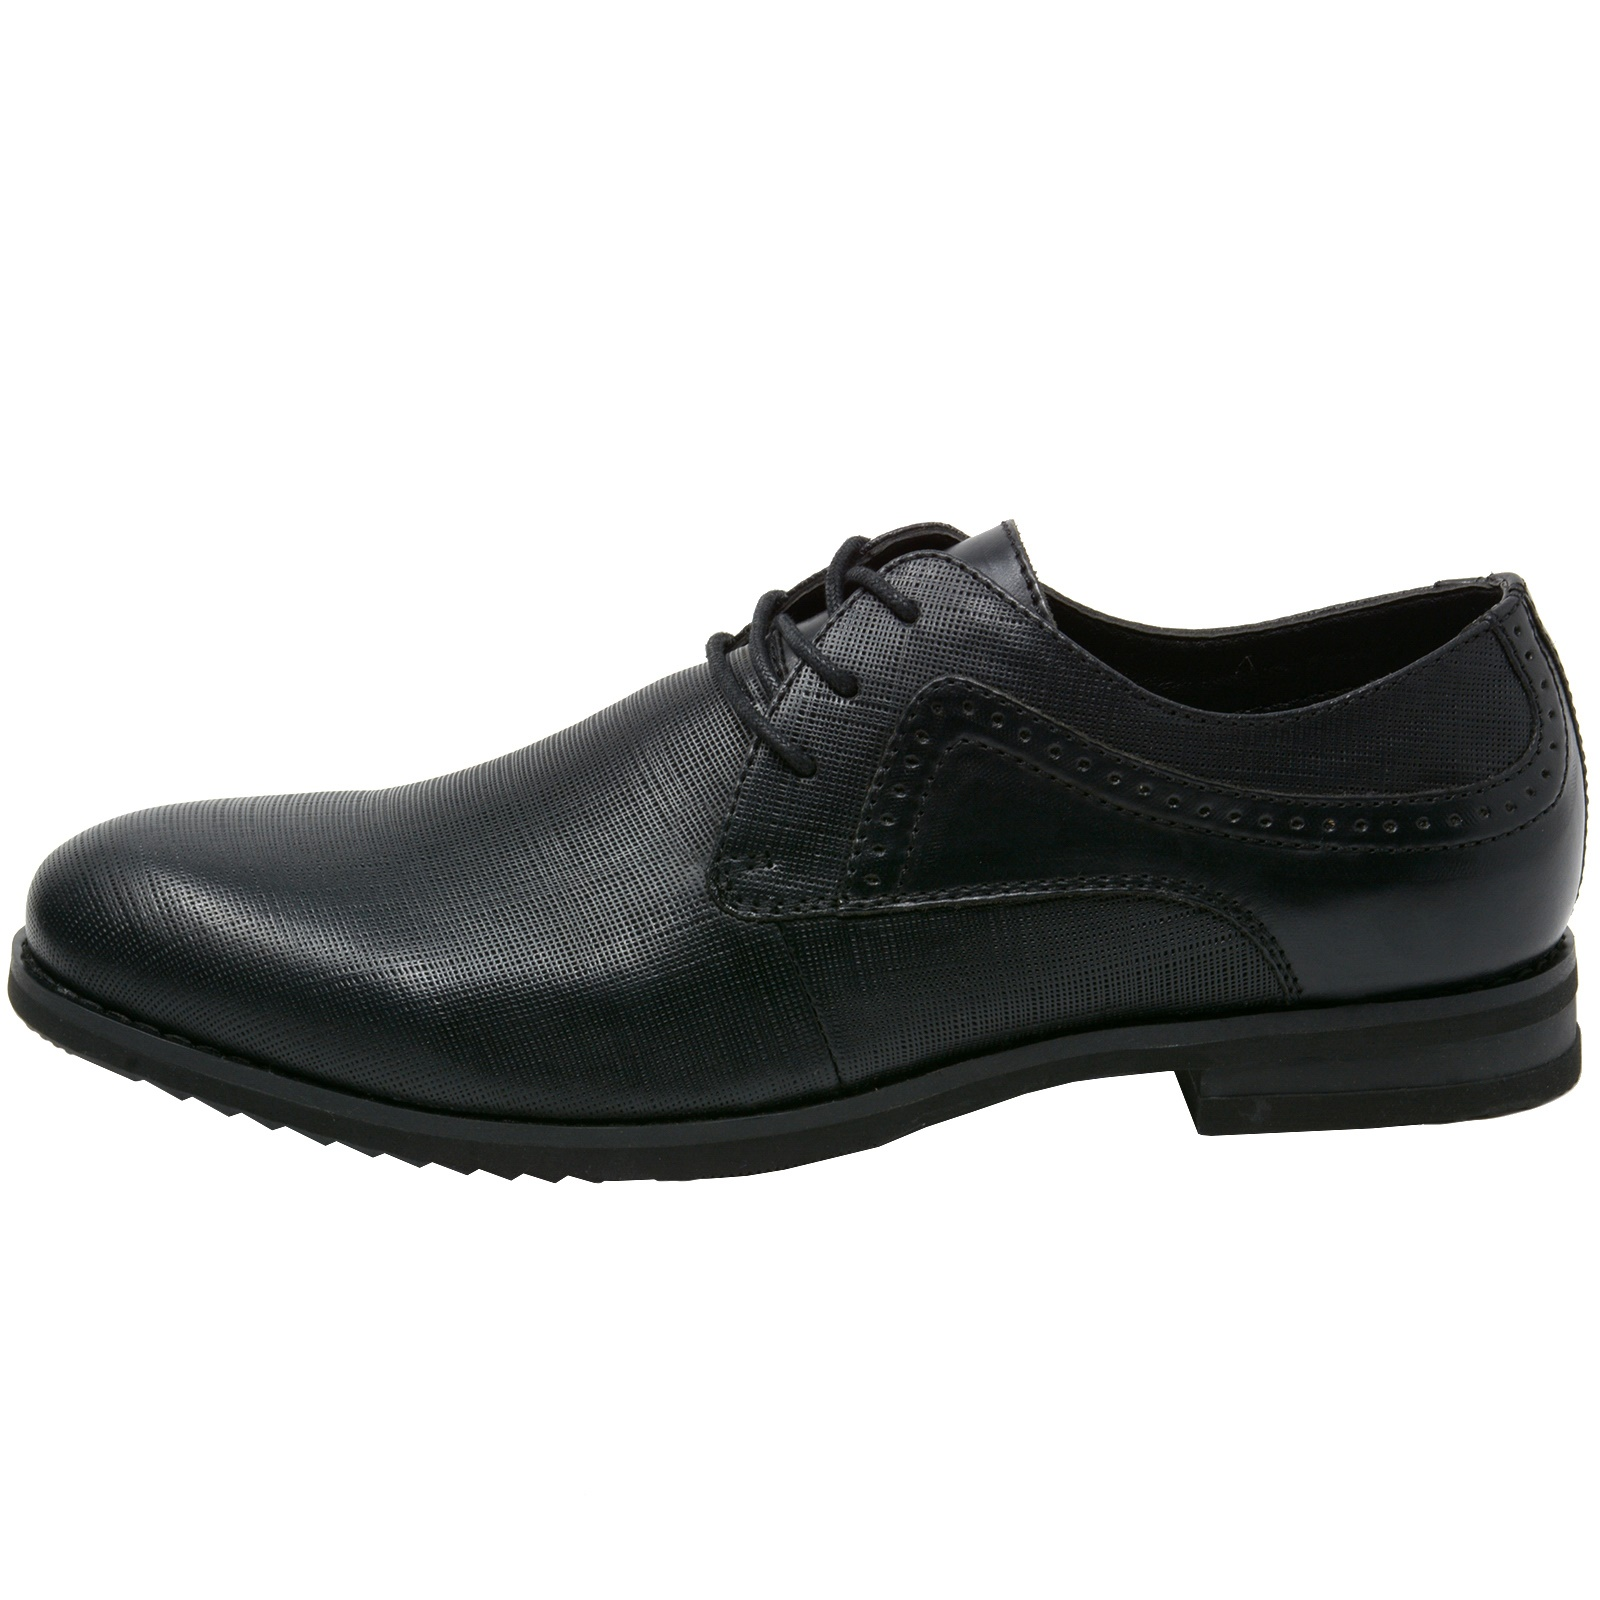 Double-Diamond-by-Alpine-Swiss-Mens-Saffiano-Leather-Lace-Up-Oxford-Dress-Shoes thumbnail 12